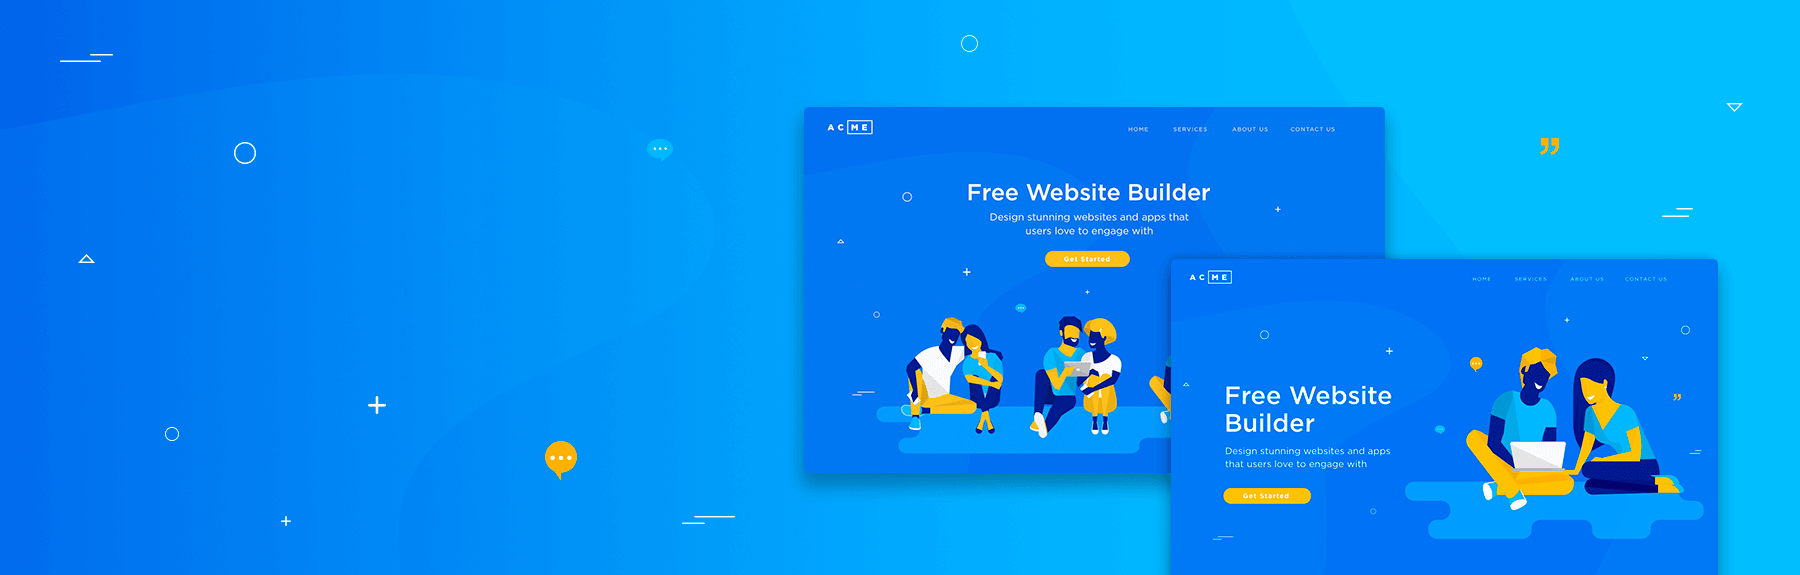 hero-image-website-design-header